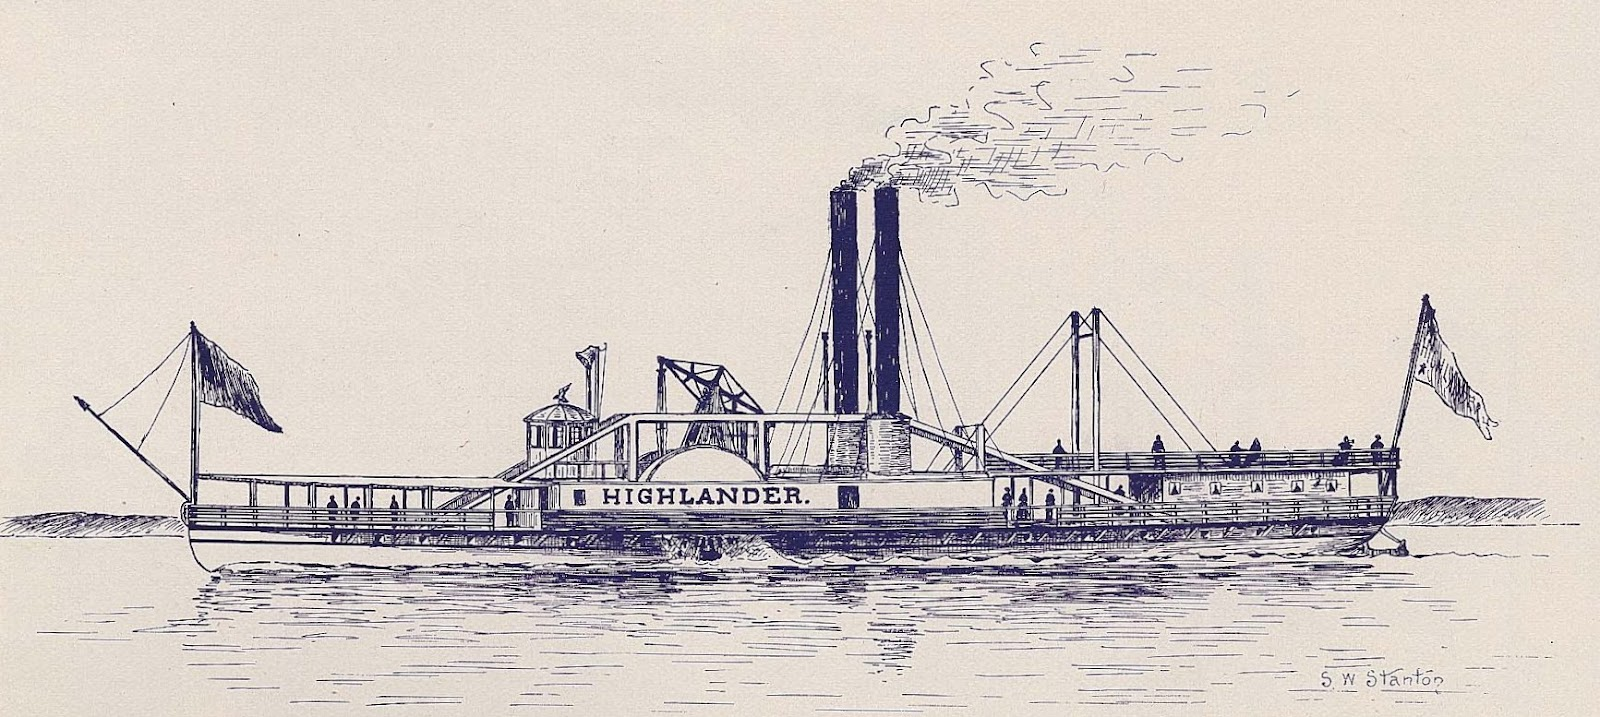 Drawn yacht steamboat Of the Ward as Hudson